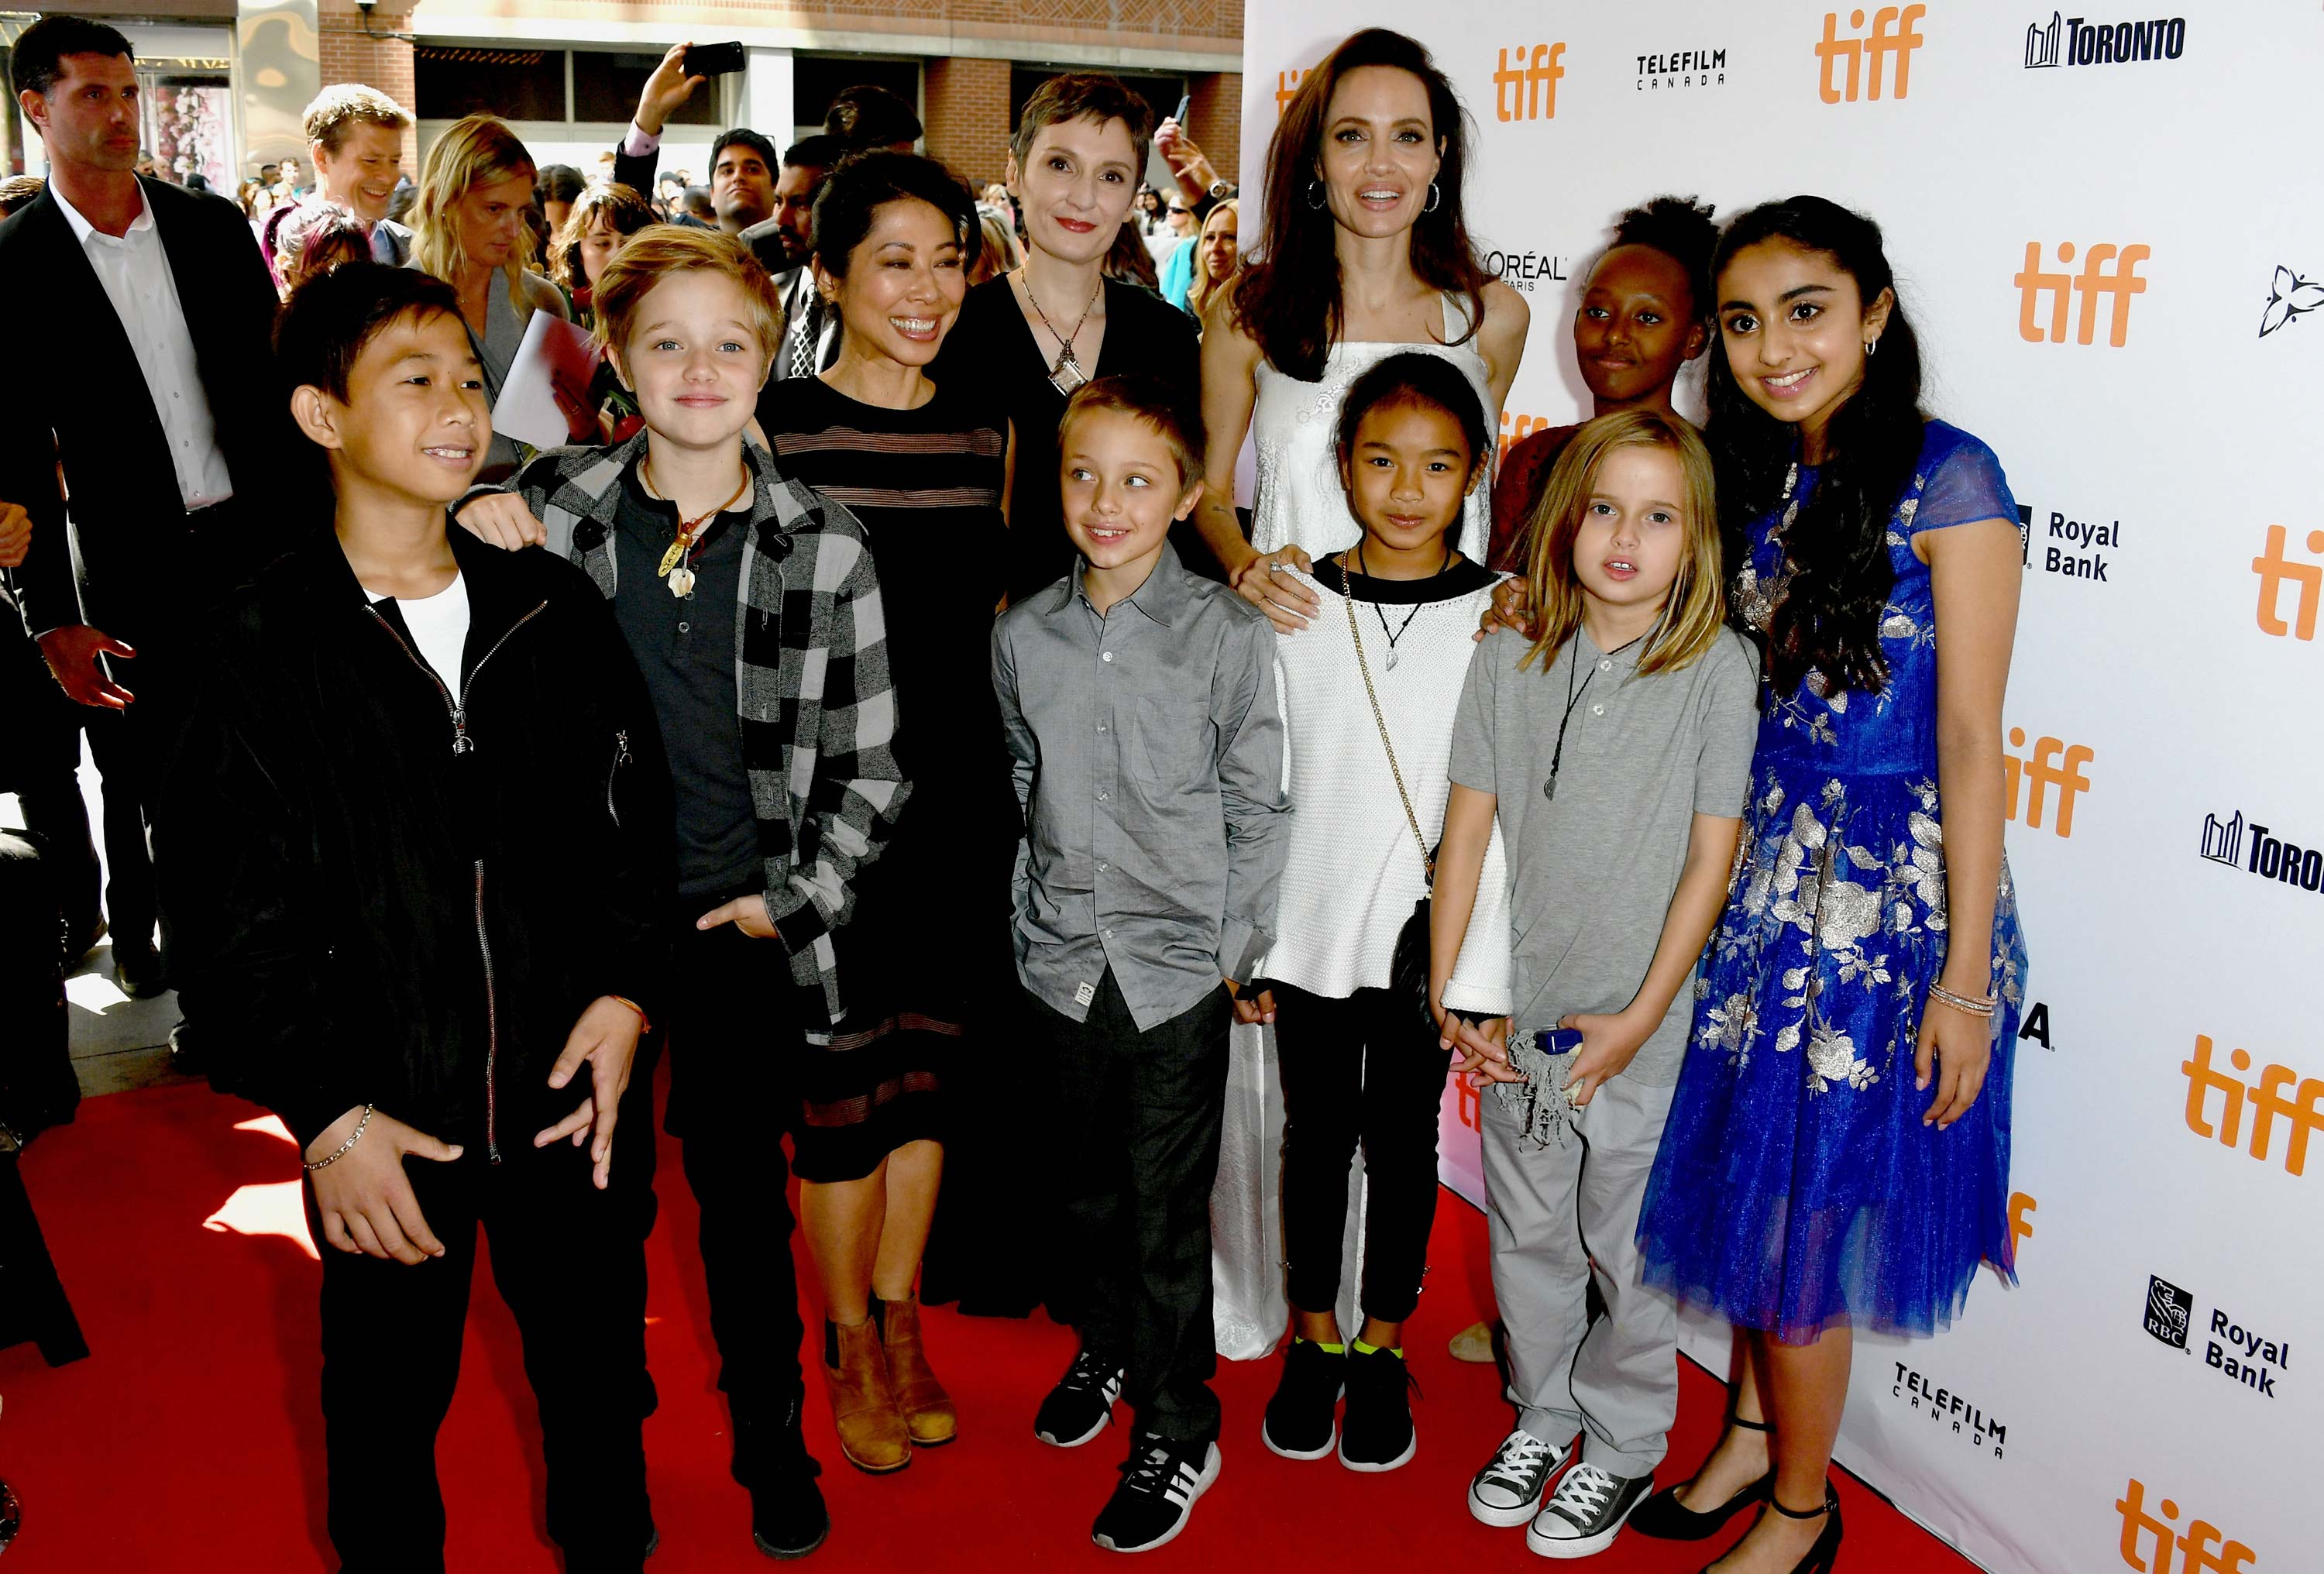 Angelina Jolie and Her Family at the Toronto International Film Fest